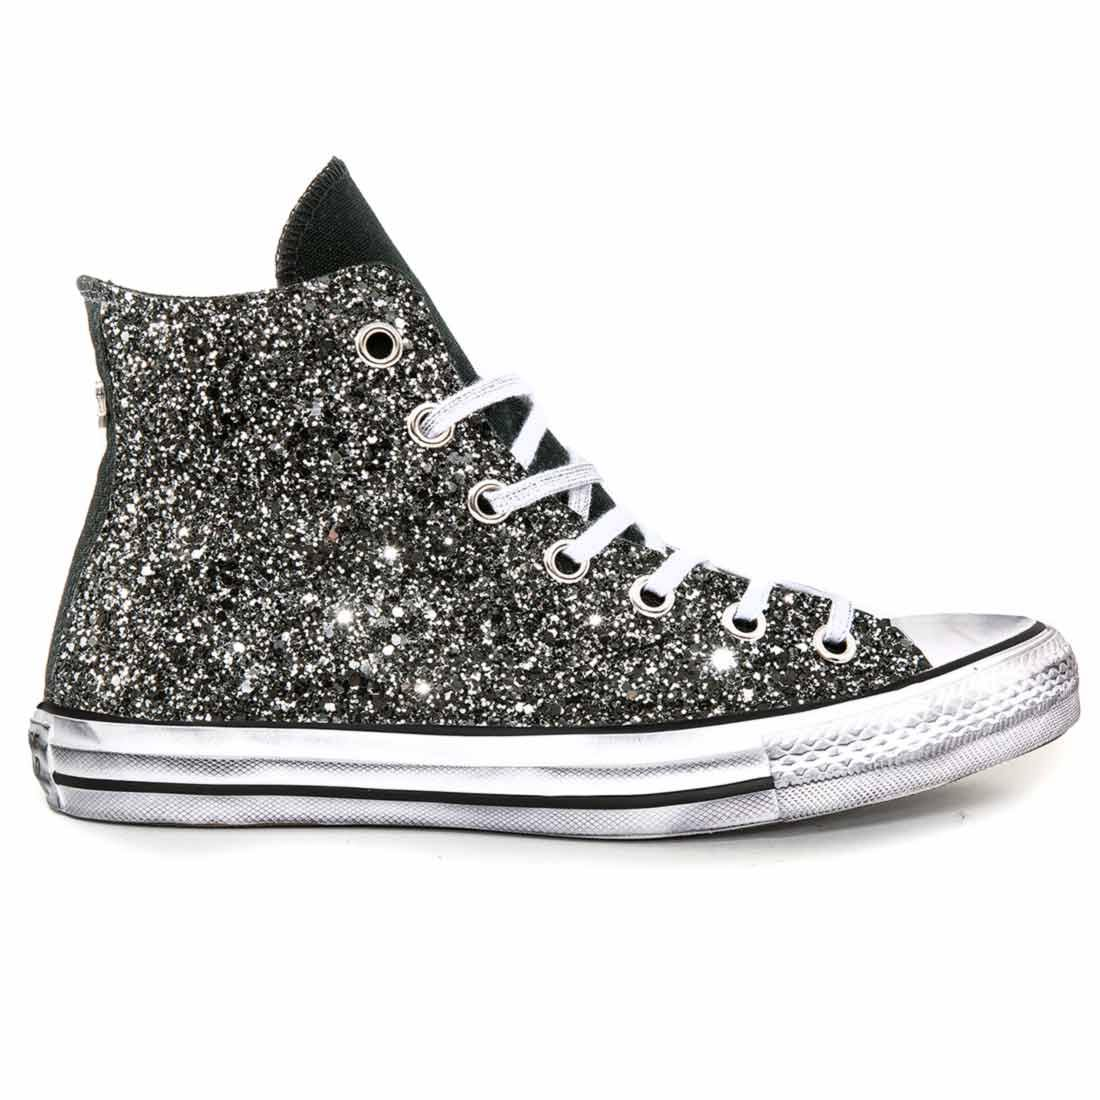 converse all star alte con glitter nero